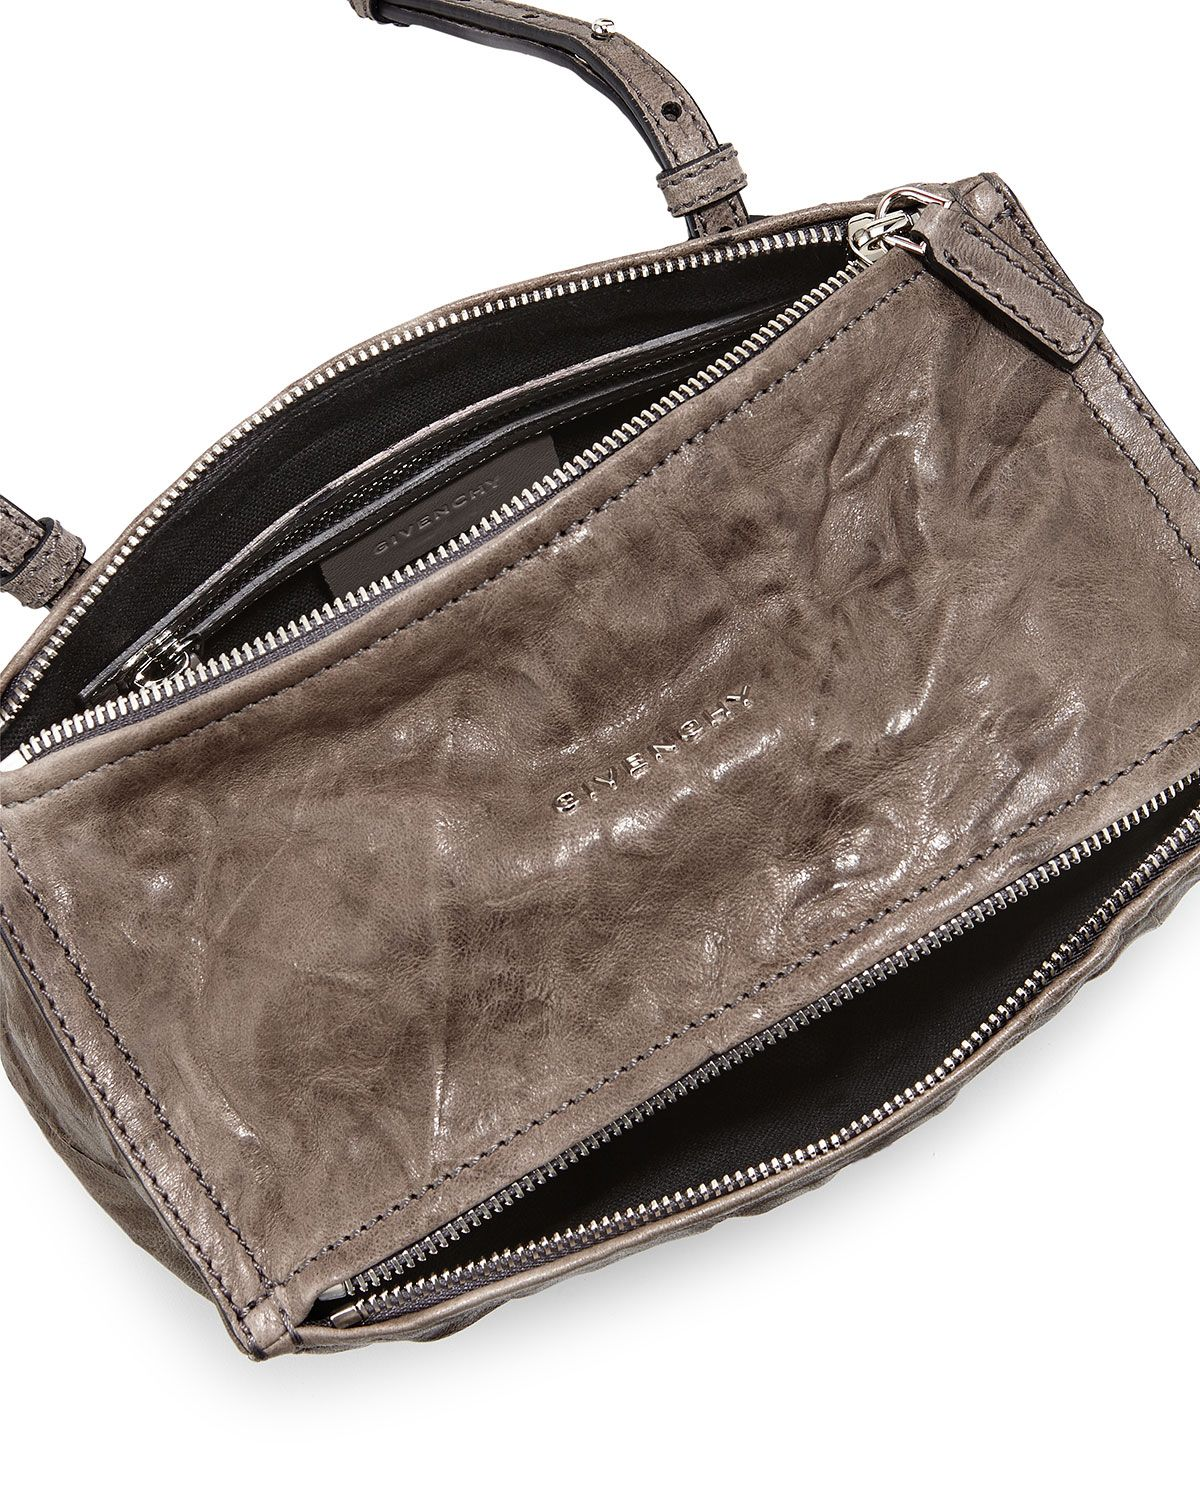 42e7b4850f Pandora Mini Pepe Crossbody Bag